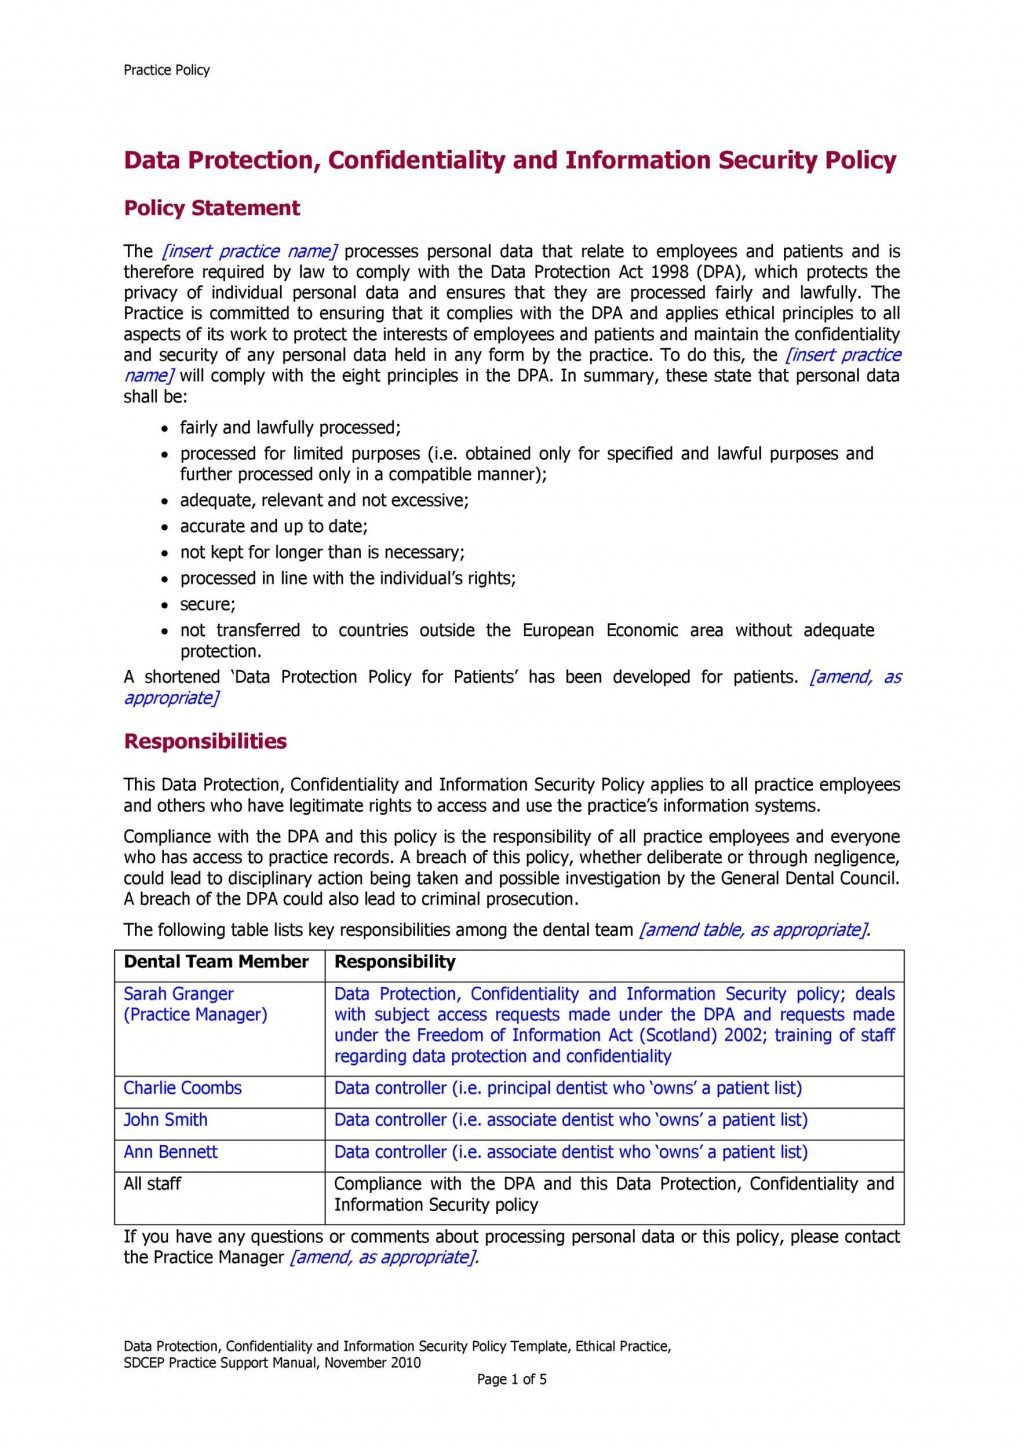 003 Astounding Data Security Policy Template High Resolution  Example Uk Center GdprLarge